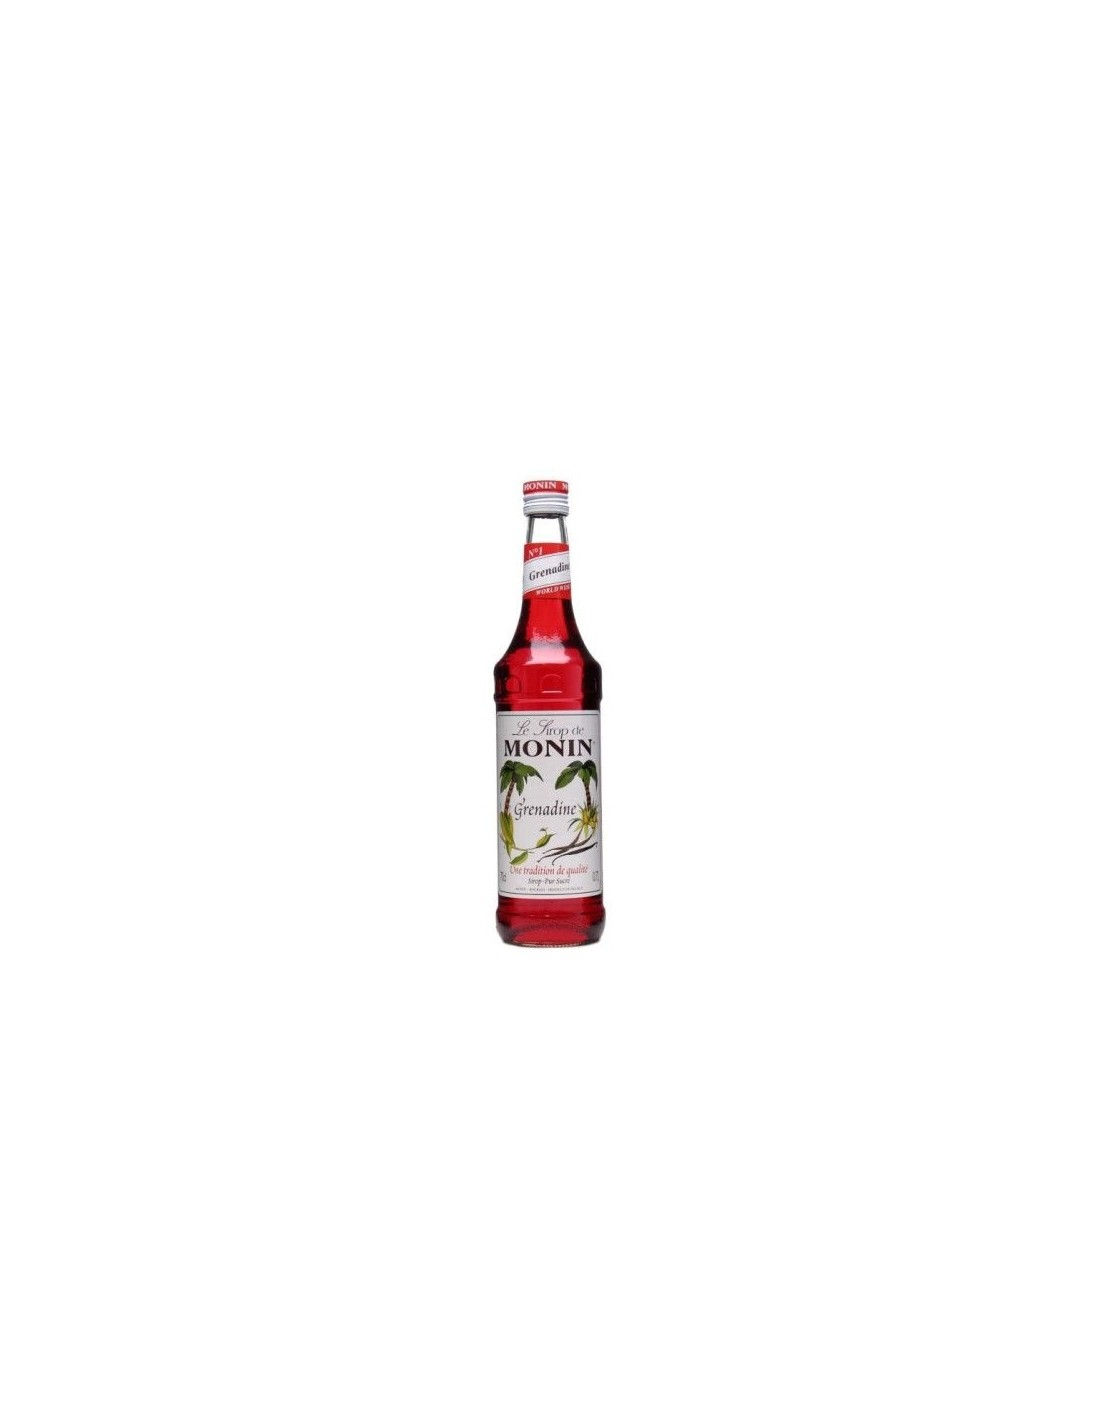 Sirop cocktail Monin Grenadine, 0.7L, Franta